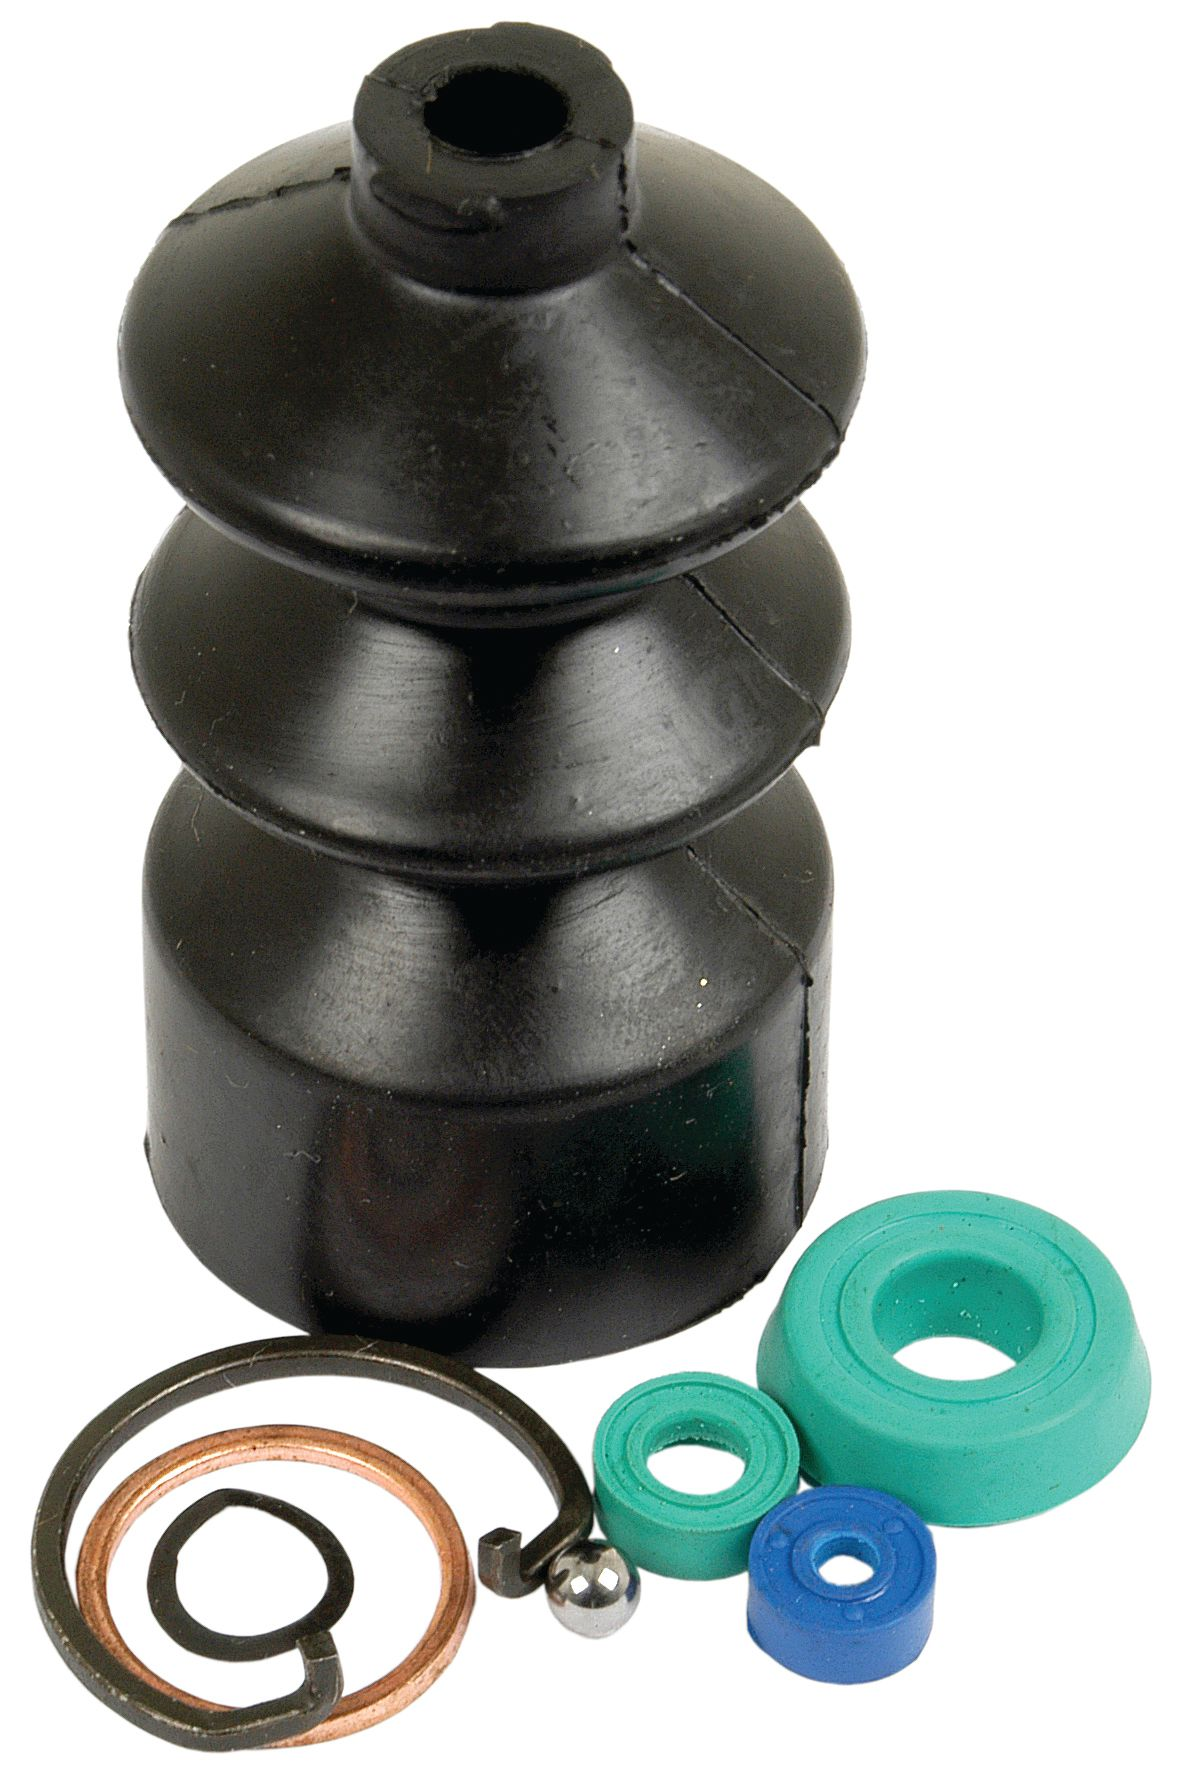 DAVID BROWN SEAL KIT 57738